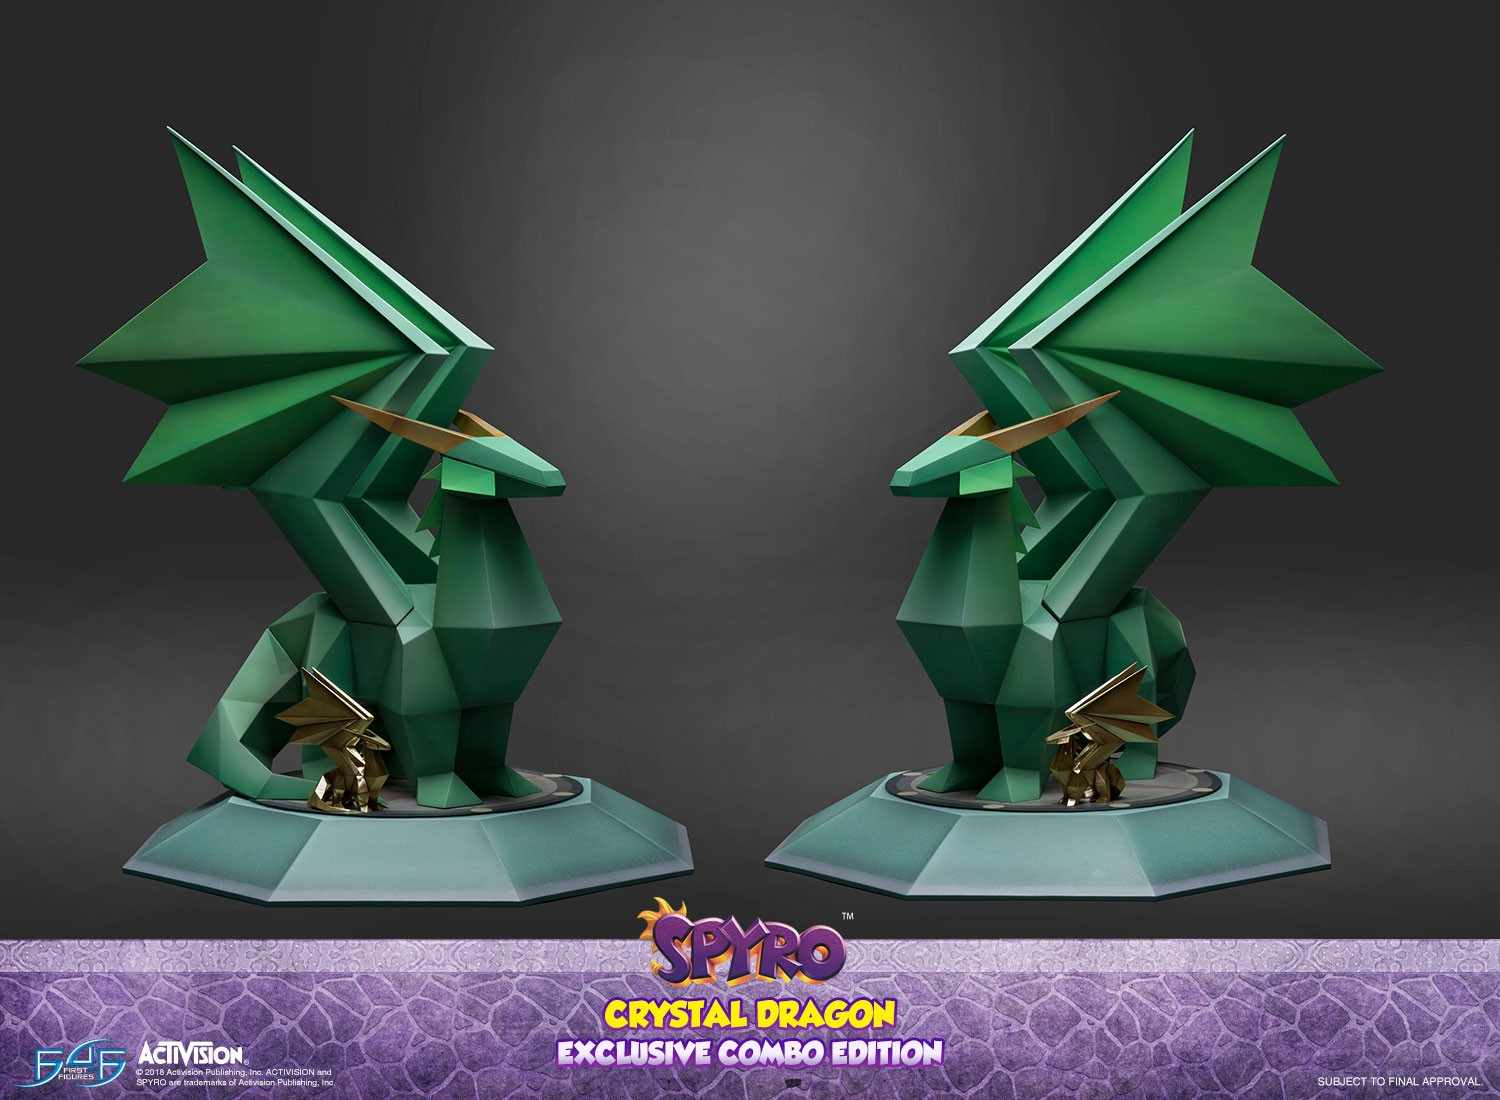 Crystal Dragon (Exclusive Combo Edition)